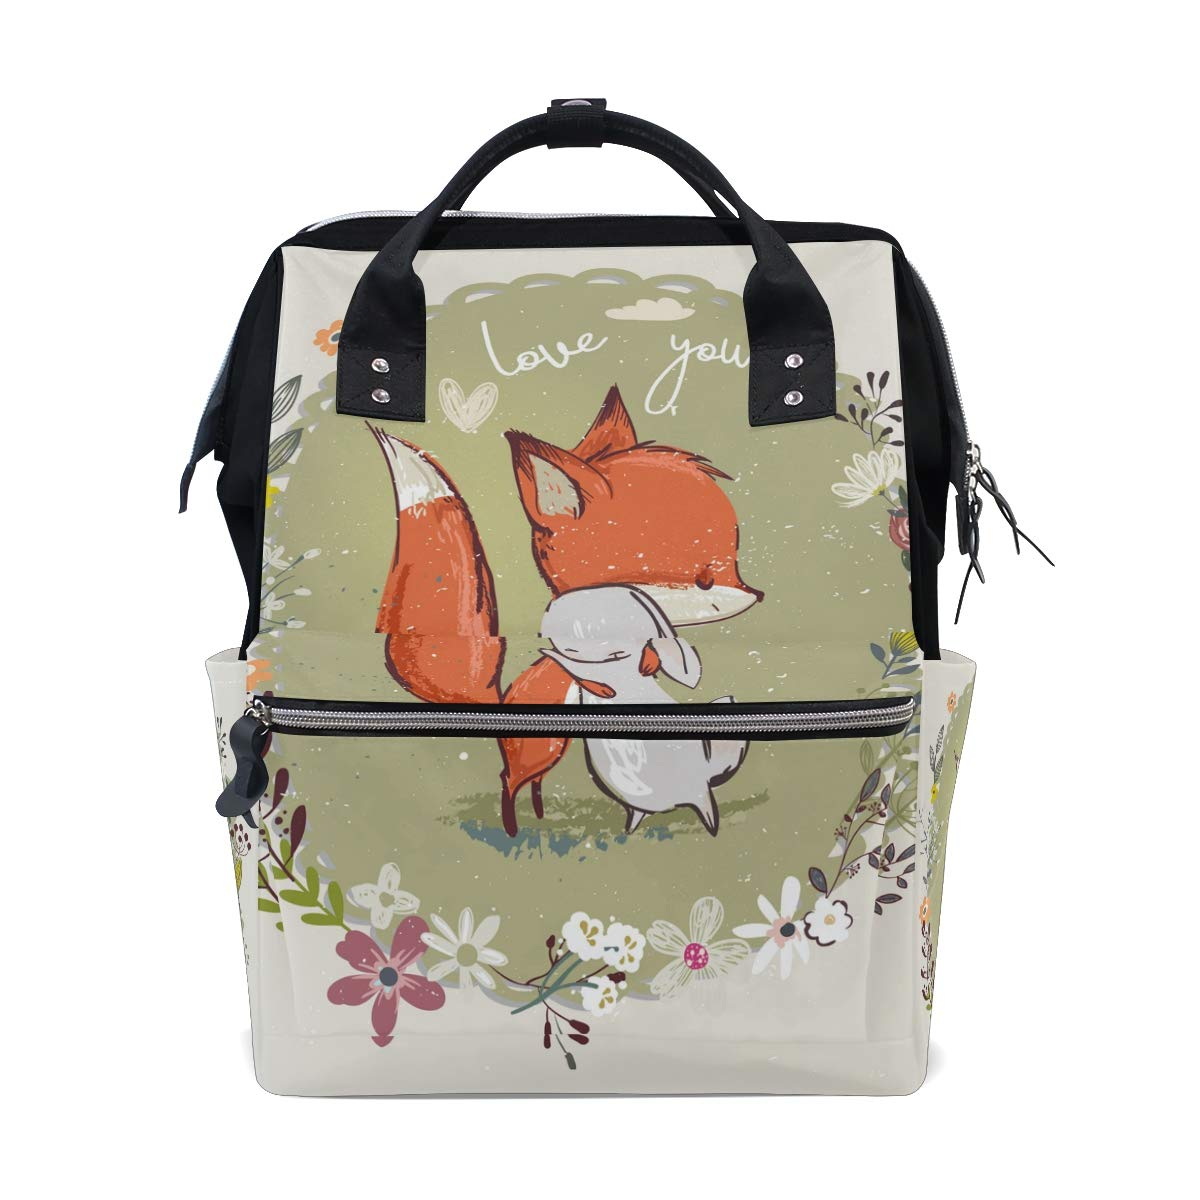 MERRYSUGAR Diaper Bag Backpack Travel Bag Large Multifunction Waterproof Cartoon Fox with Floral Stylish and Durable Nappy Bag for Baby Care School Backpack